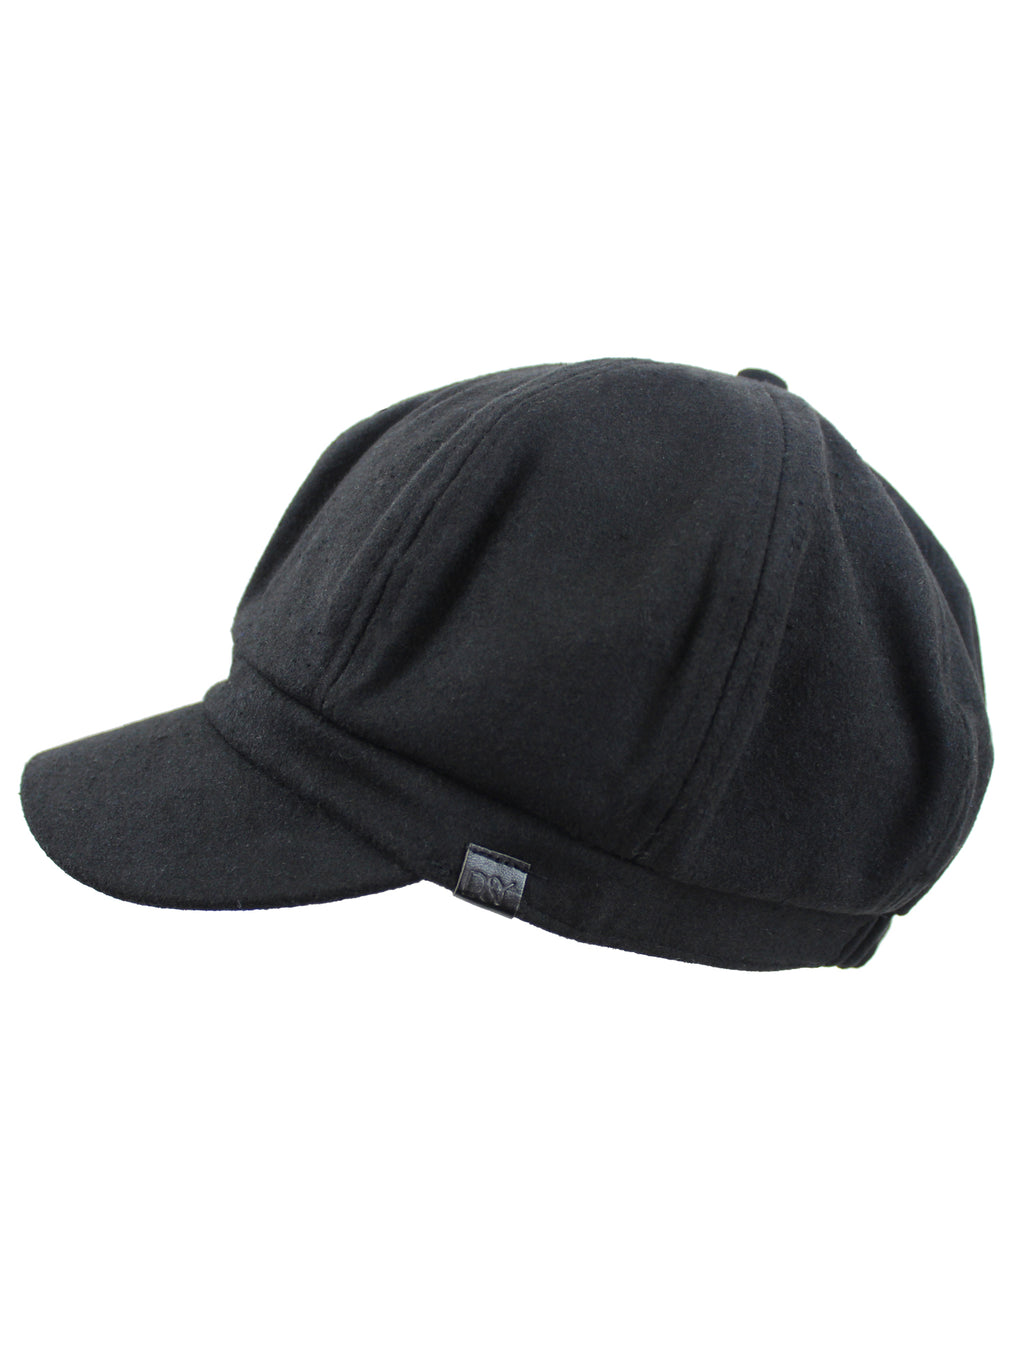 Black Baker Boy Wool Cabbie Hat